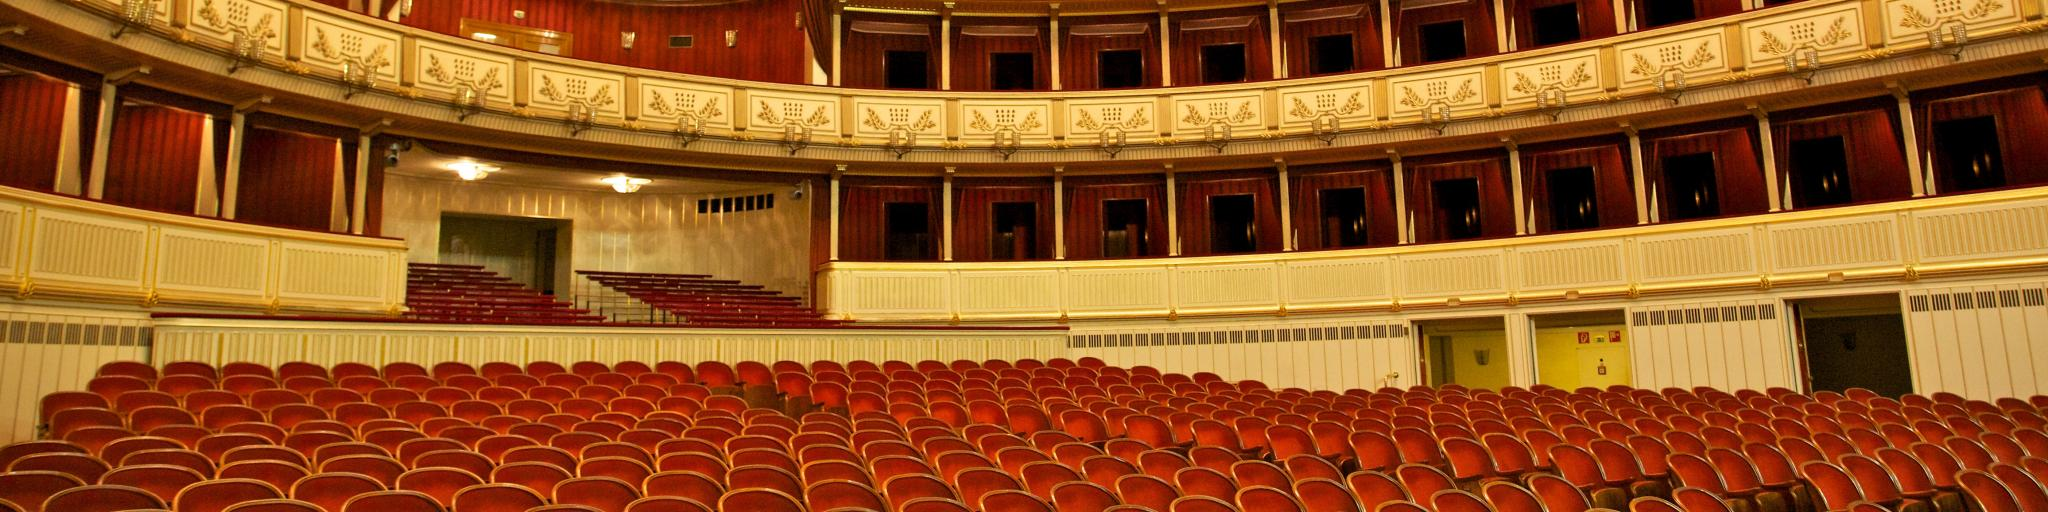 Red seats lined up in the audience of the grand Vienna State Opera House in Austria